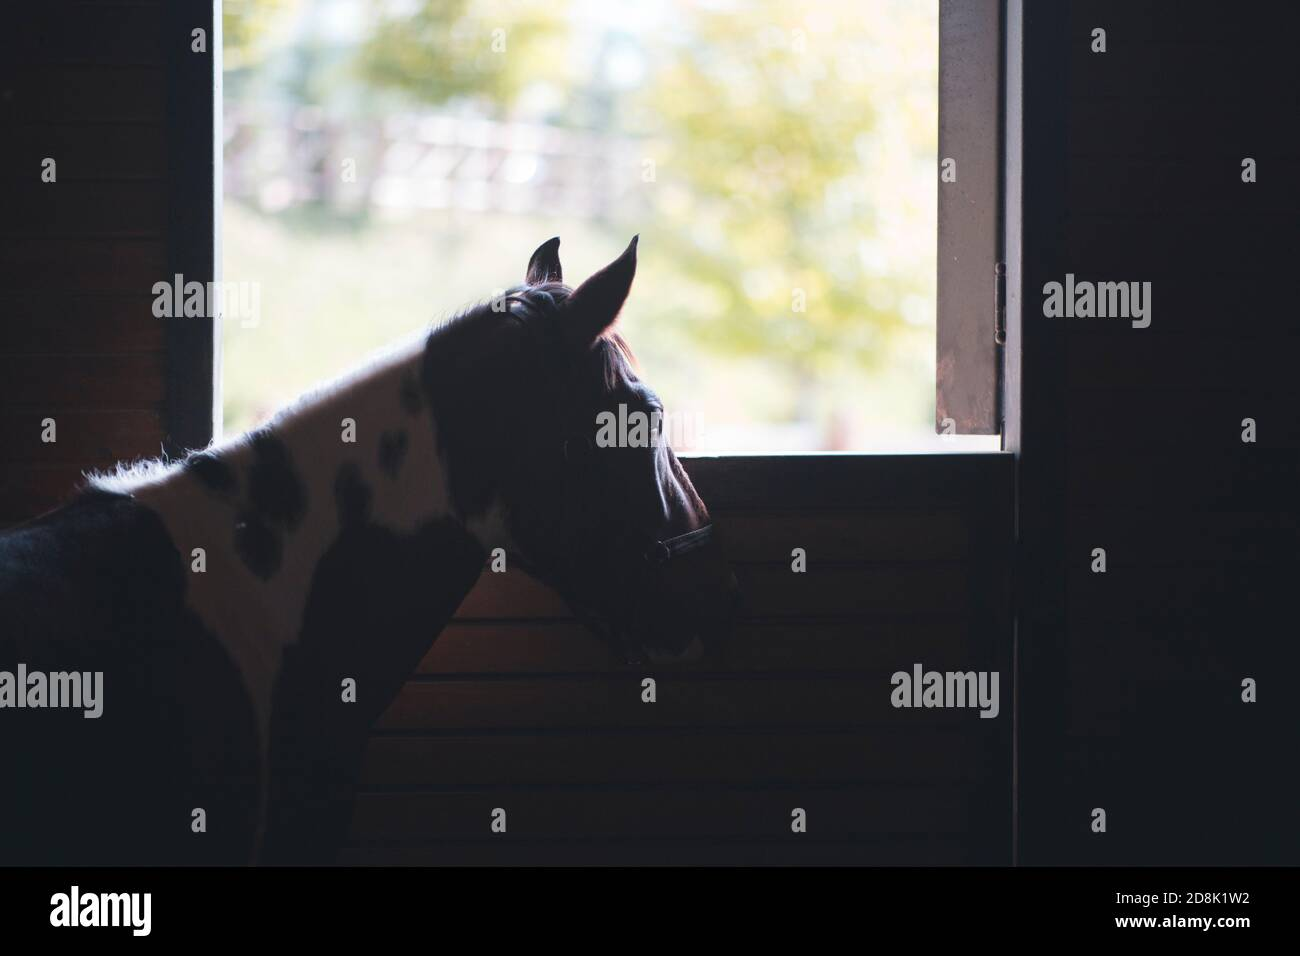 View of exploiting pony, it is an poor animal and looking for freedom. Copy space design text includes. Stock Photo